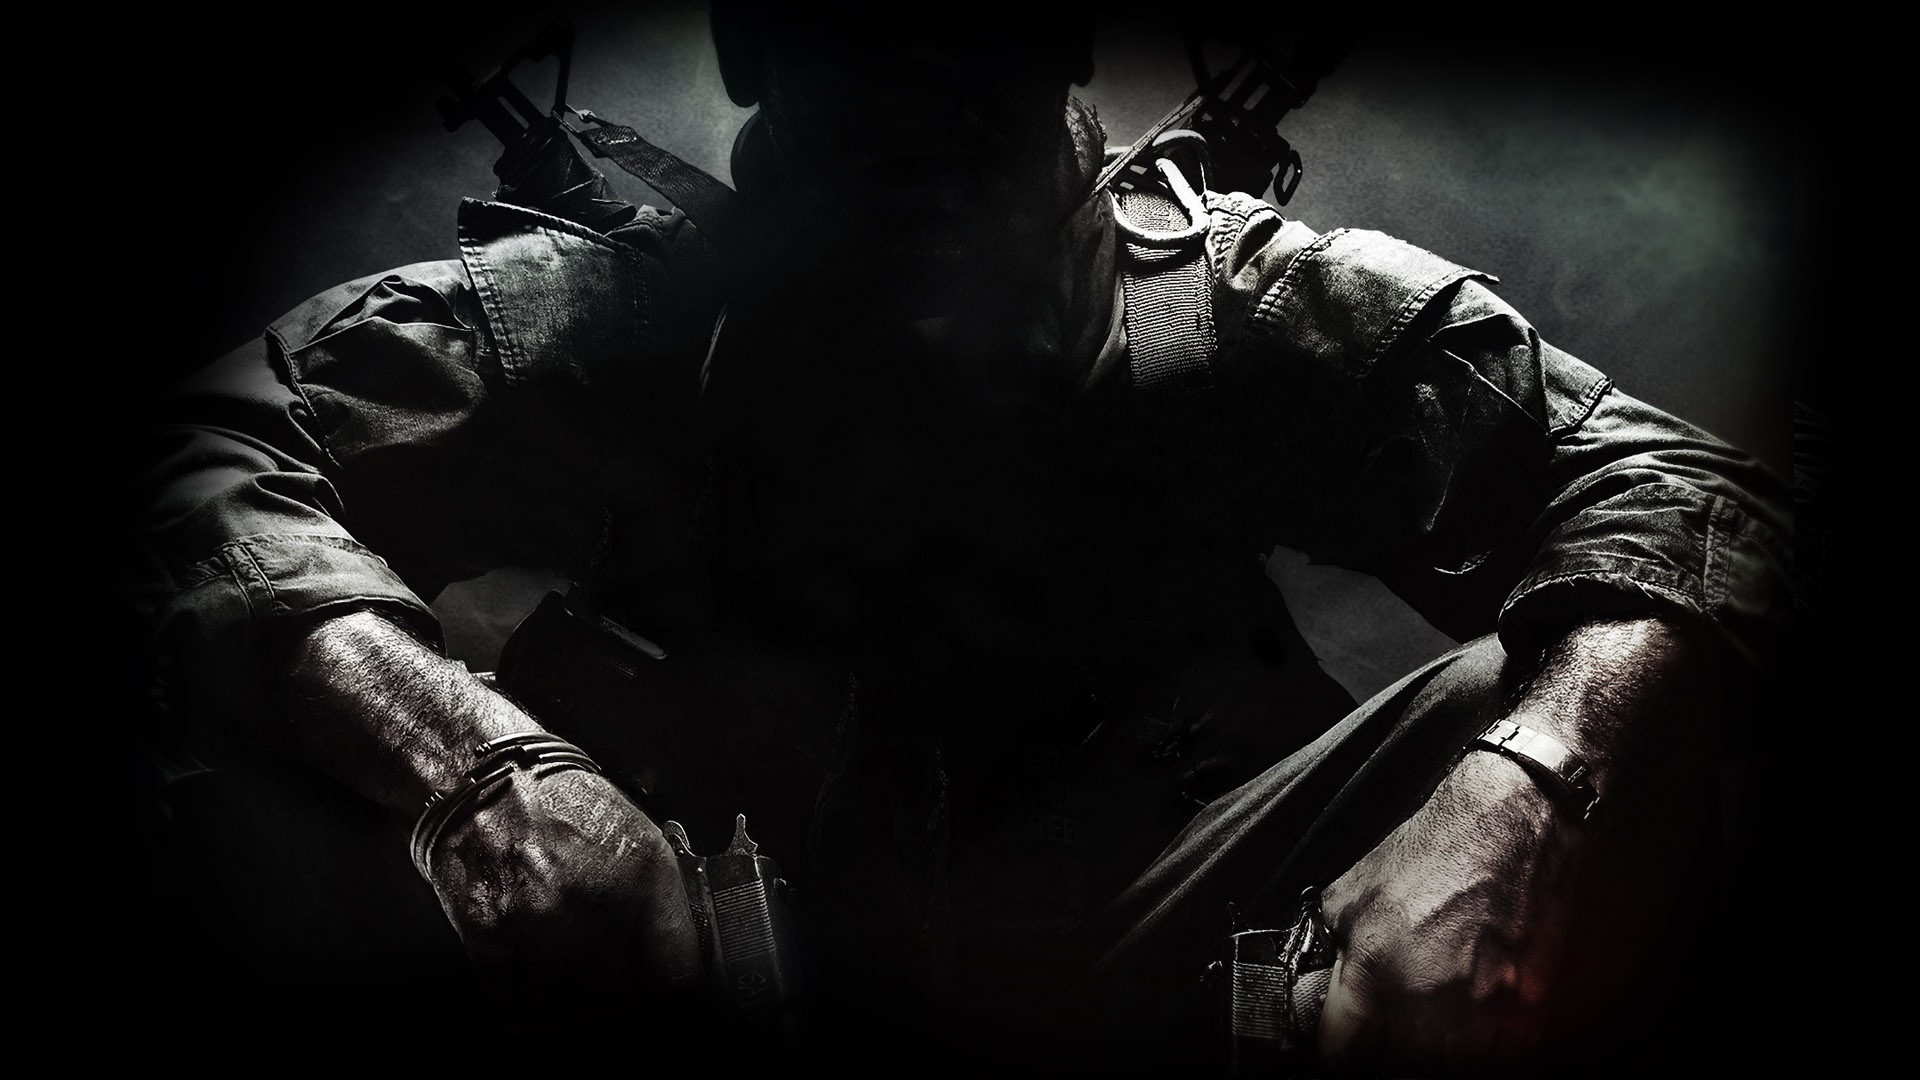 Call-of-Duty-Black-Ops-http-es-wikipedia-org-wiki-Call-of-Duty-Black-Ops-wallpaper-wp3403678